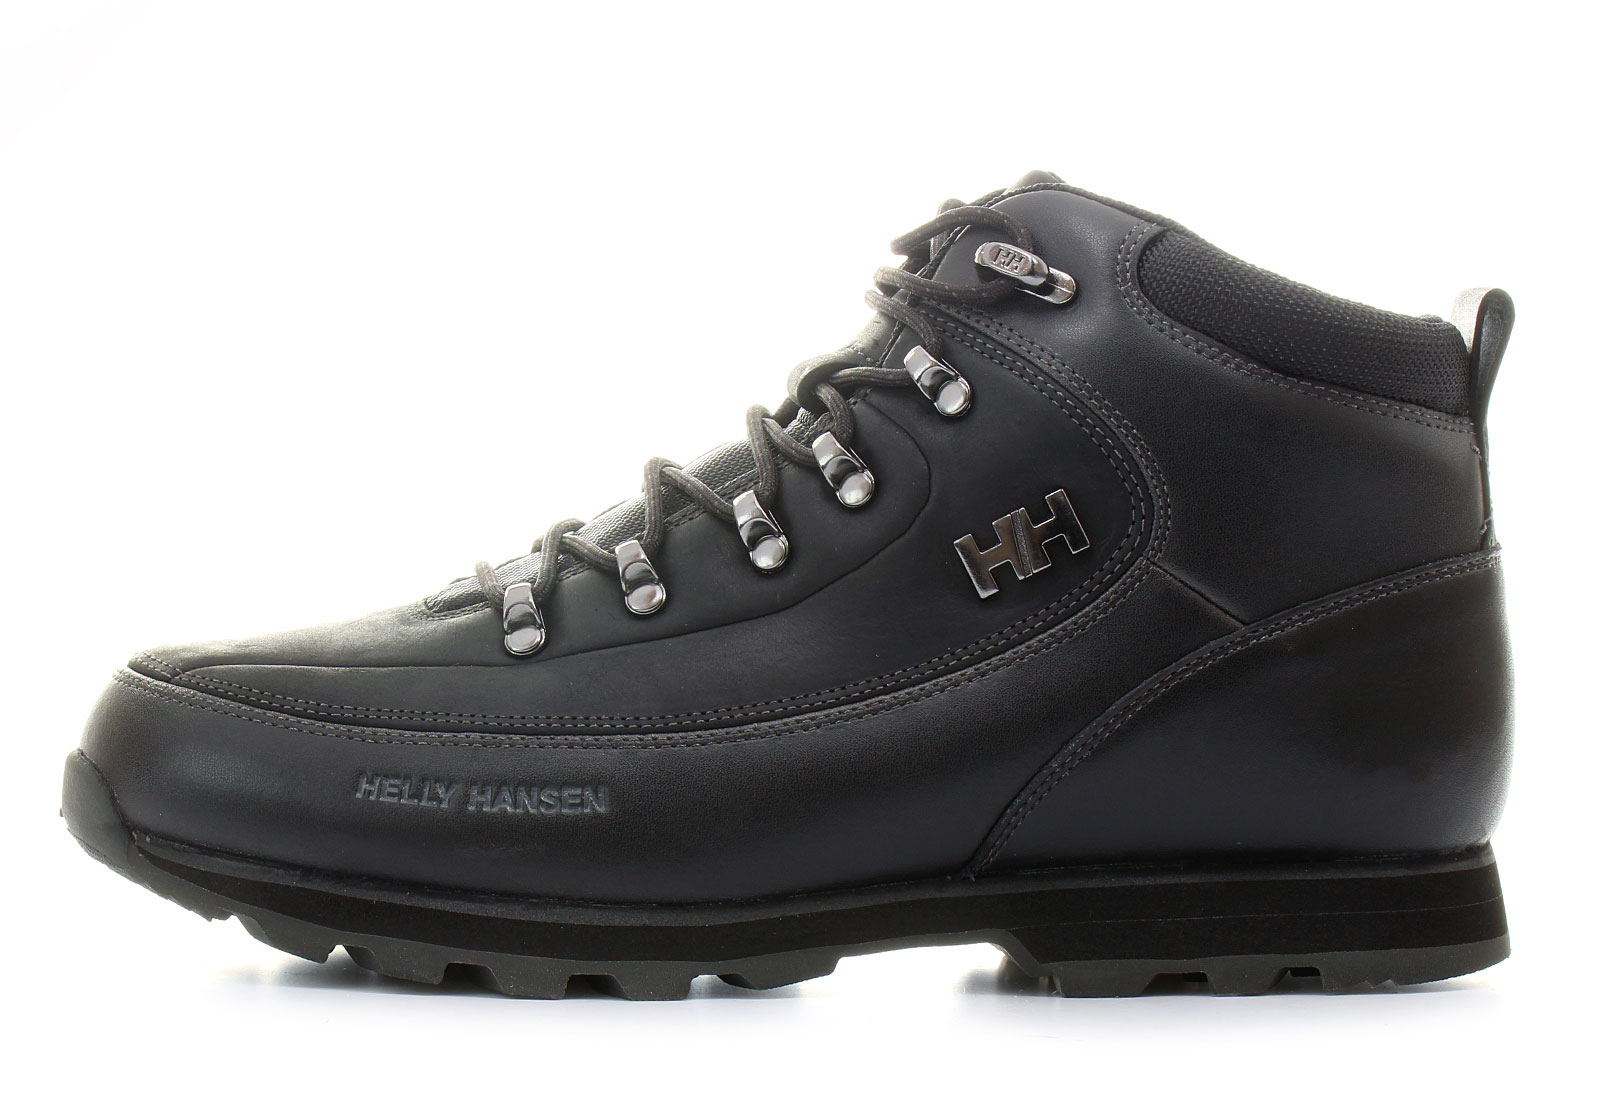 Helly Hansen Topánky - The Forester - 10513-996 - Tenisky 4c3135e98a5